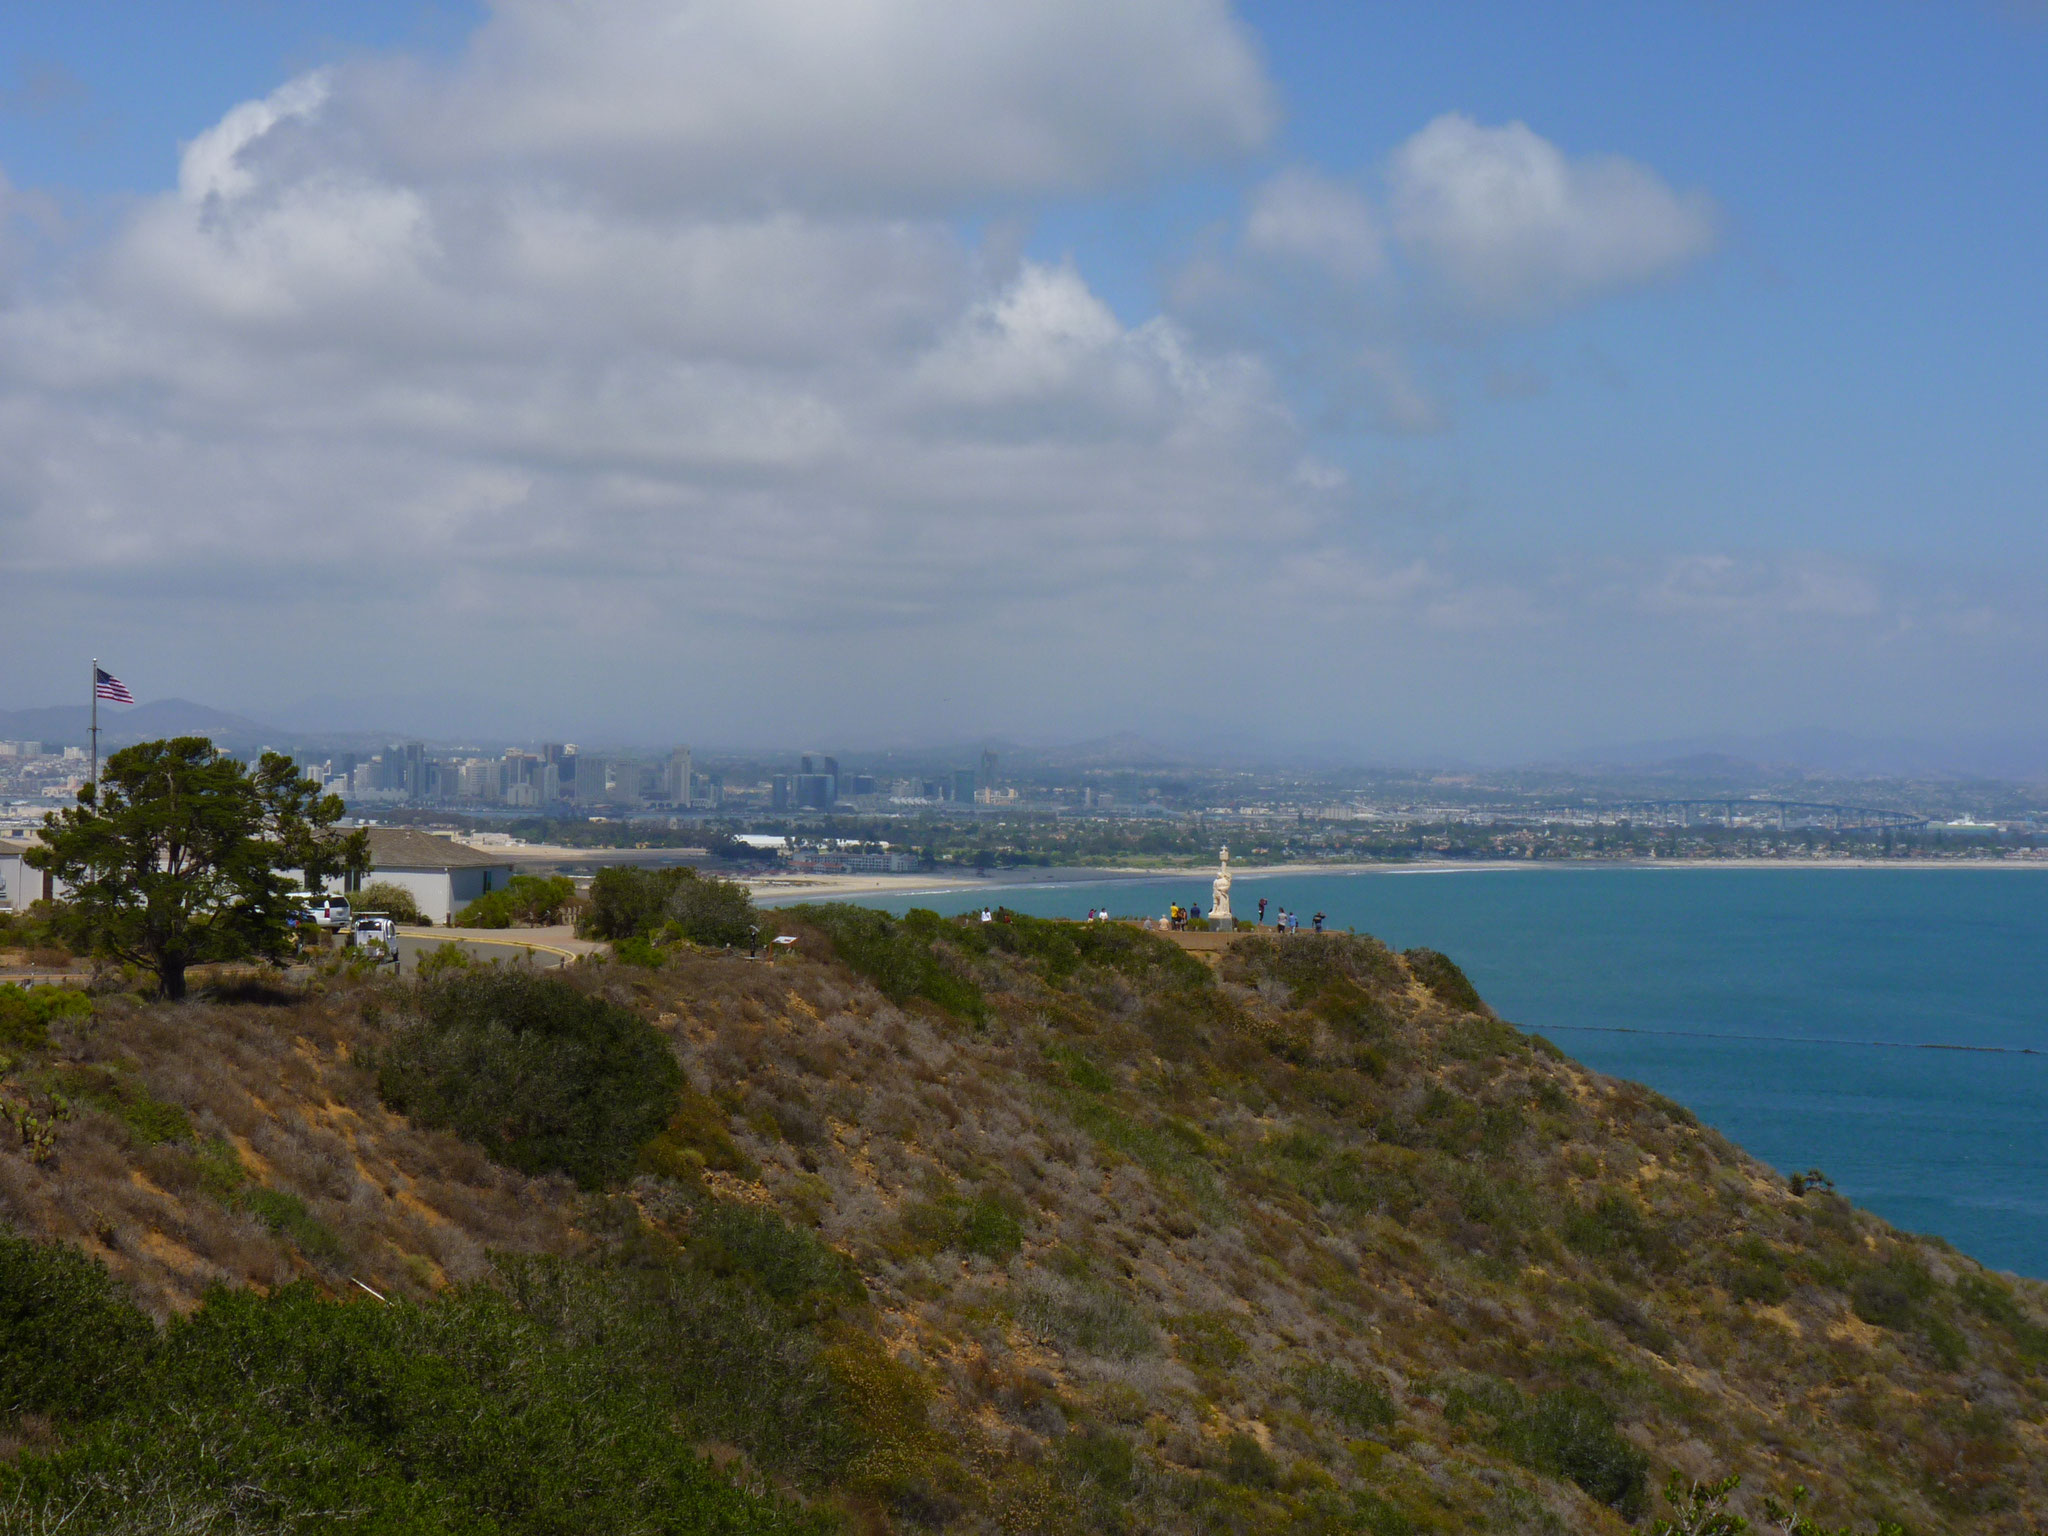 Vue du Cabrillo National Monument